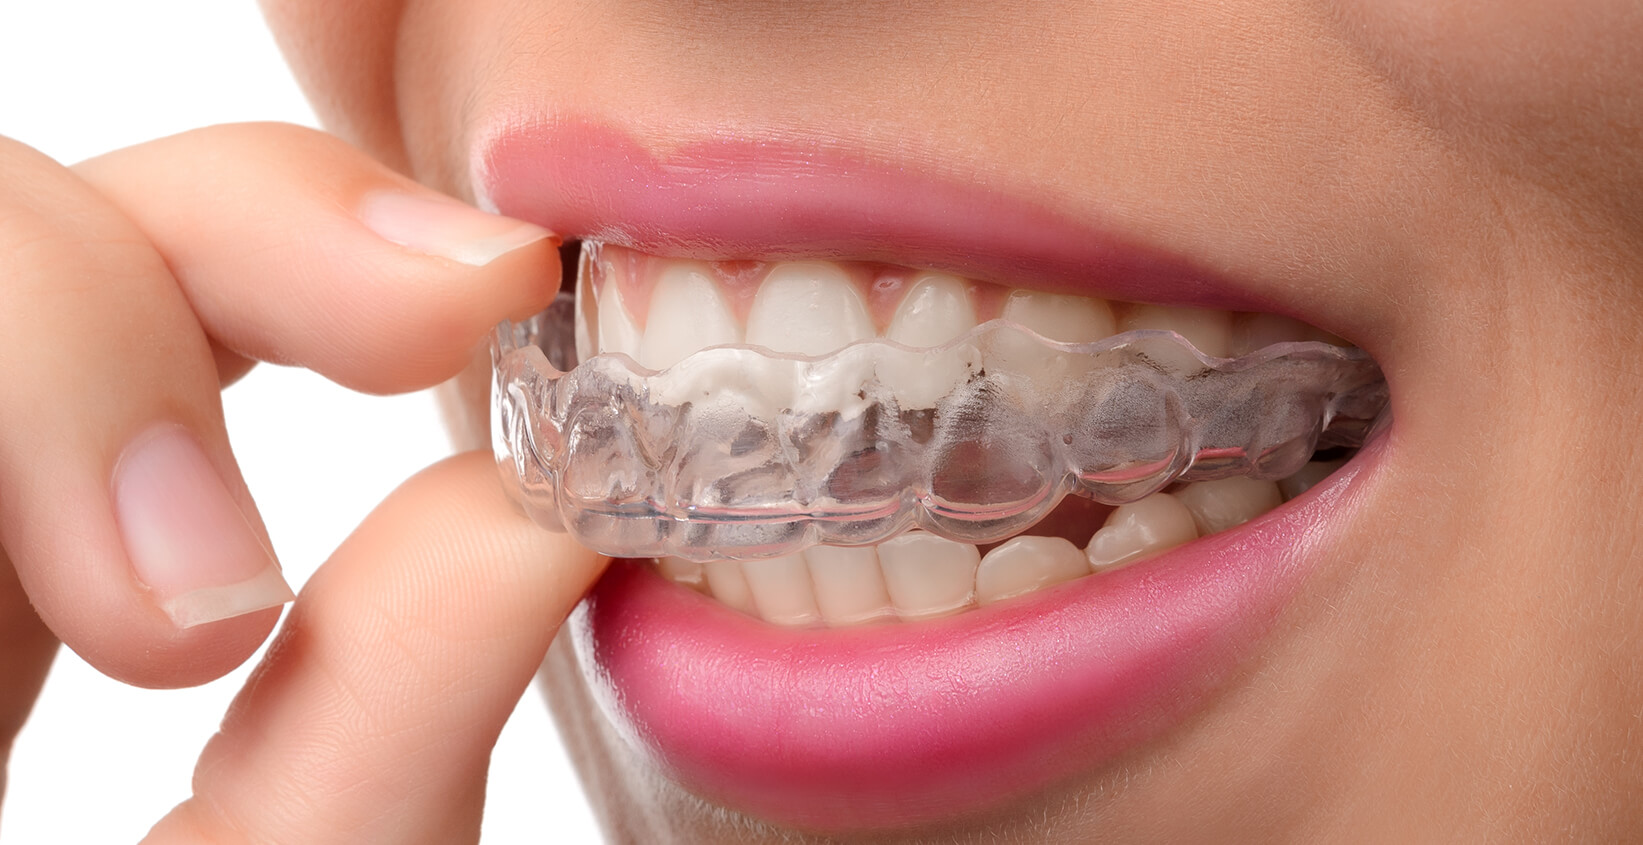 Tips For Invisalign Care Given By Dentist In Manhattan Beach CA Area